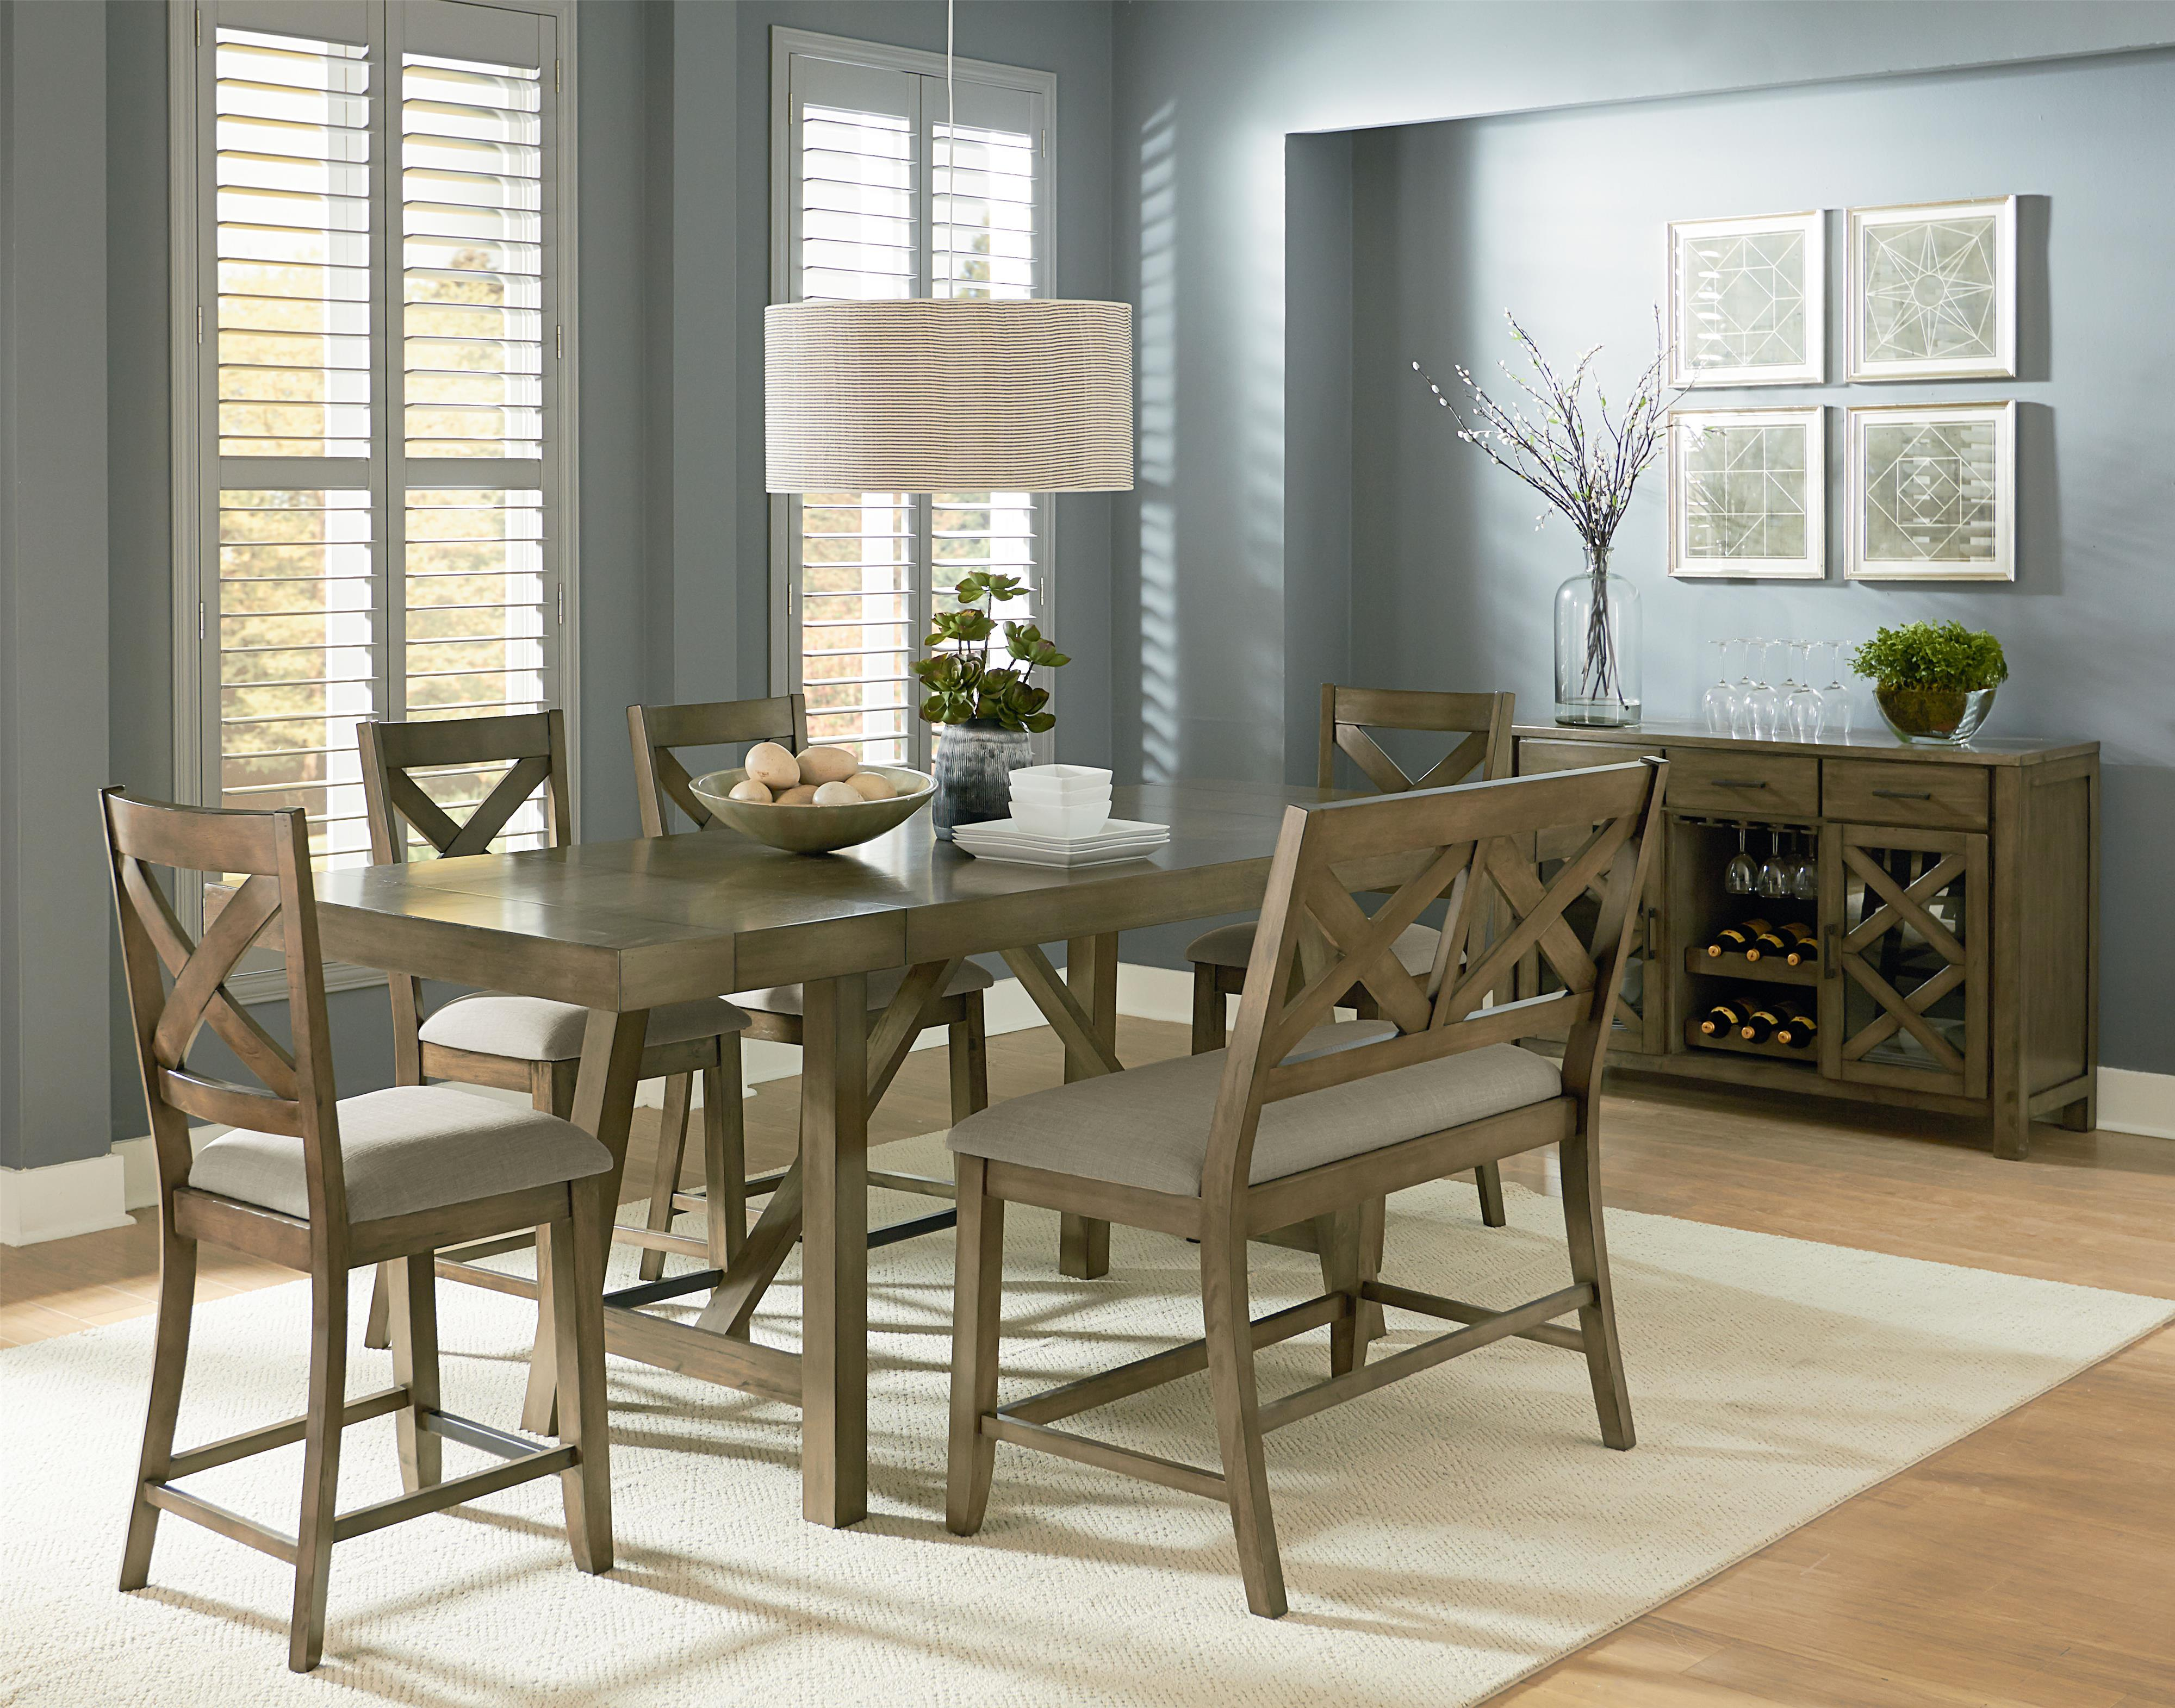 Standard Furniture Omaha Grey Casual Dining Room Group - Item Number: 16680 Dining Room Group 9